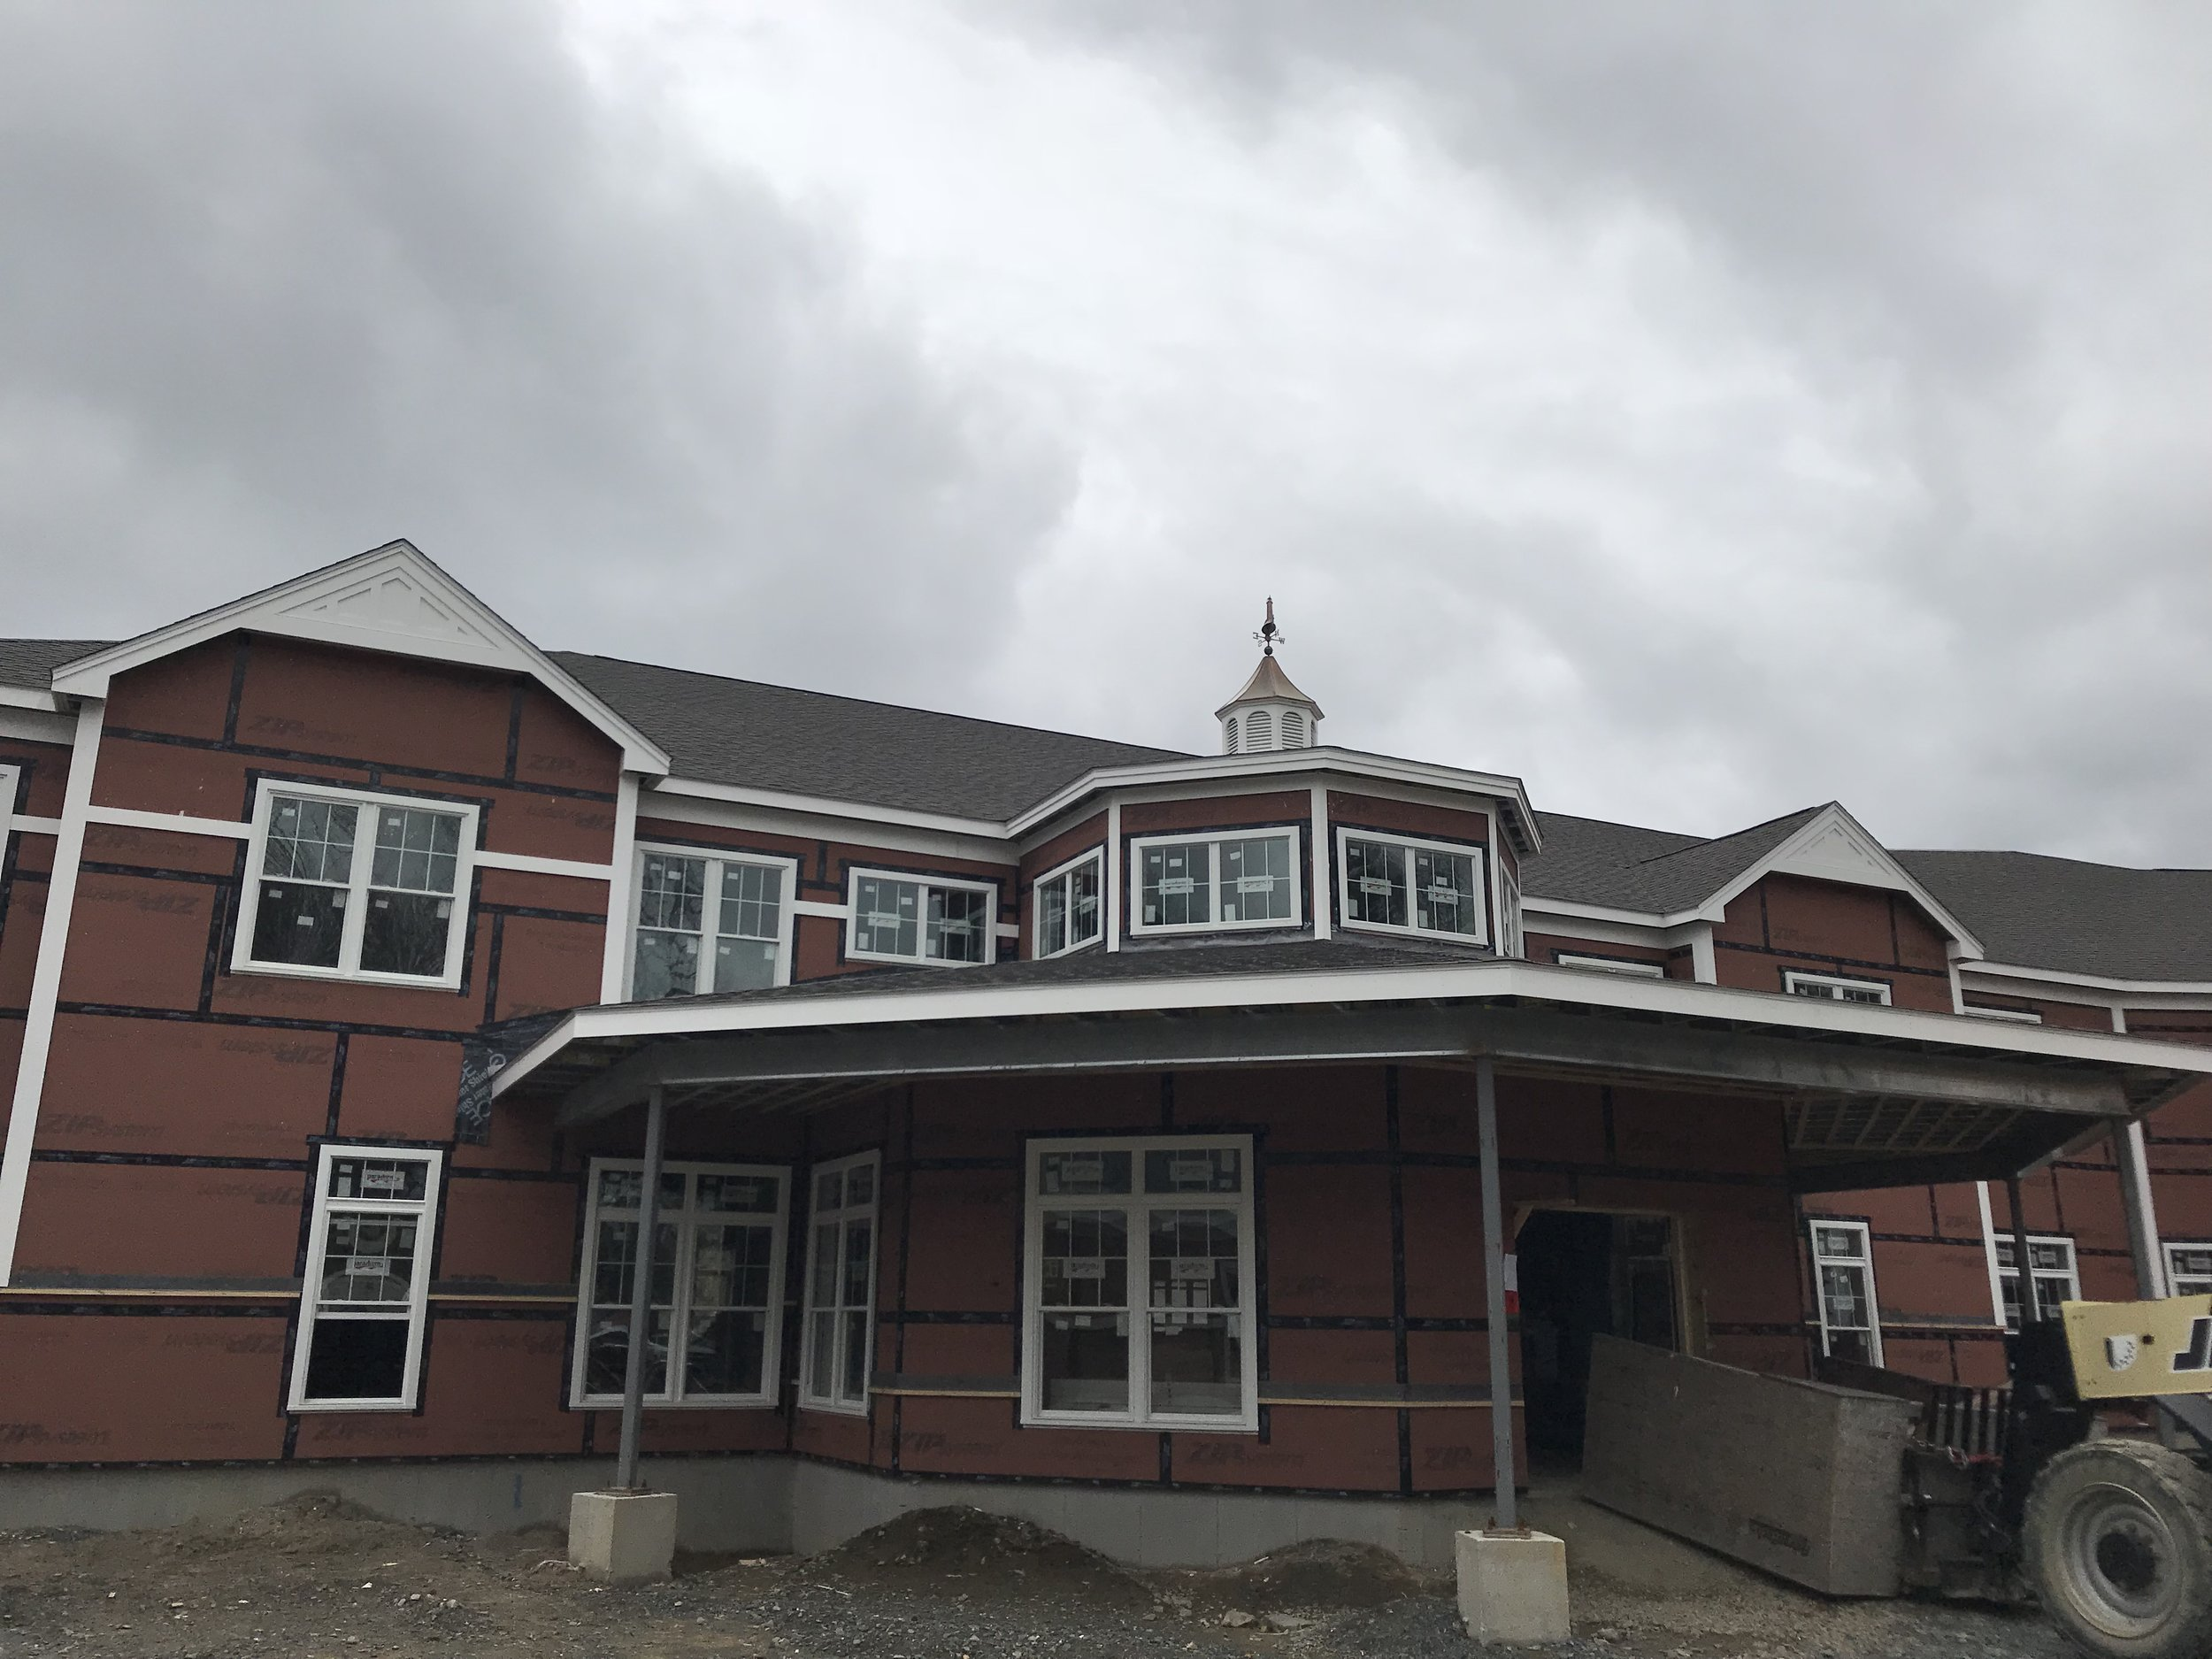 Cornerstone in Hampton  Hampton, NH CFS Trusses & Load Bearing Wall Panels Contractor: Merrimack Drywall